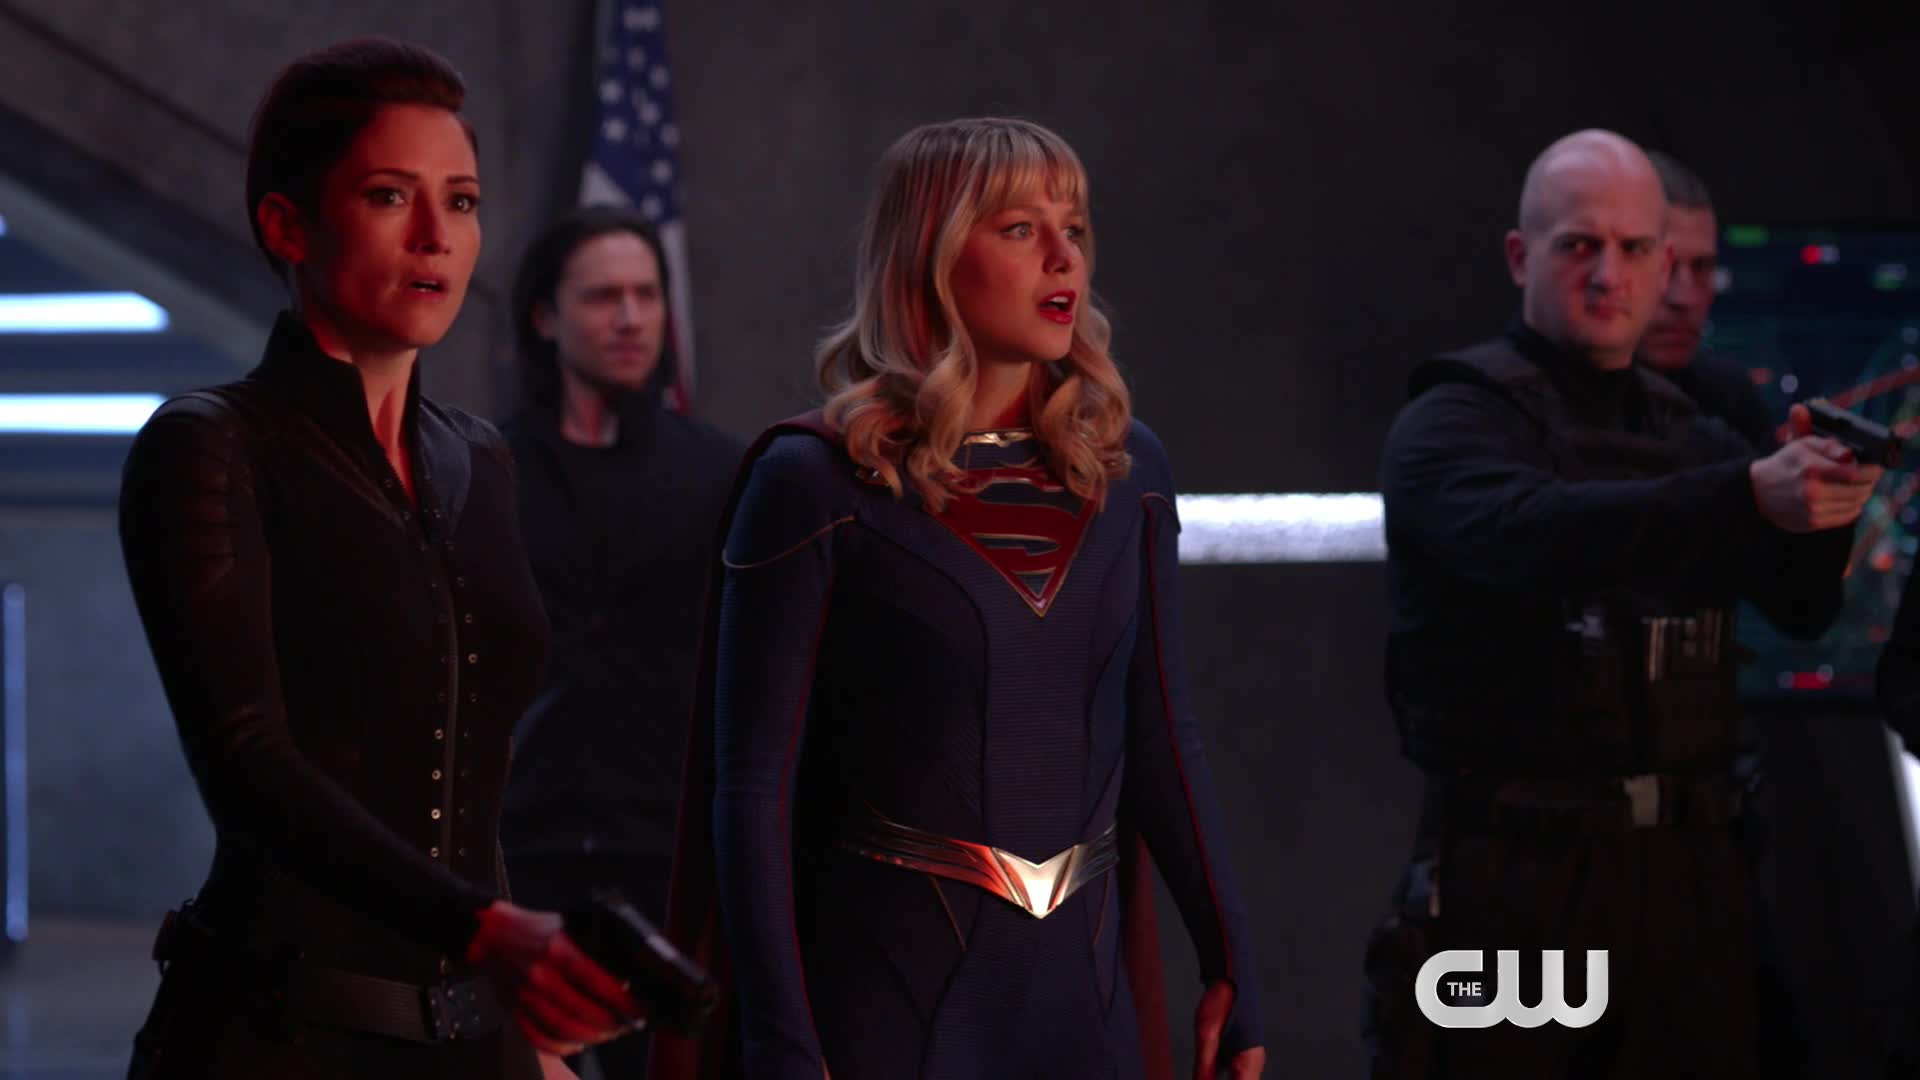 Supergirl: Crisis on Infinite Earths Clip screen capture